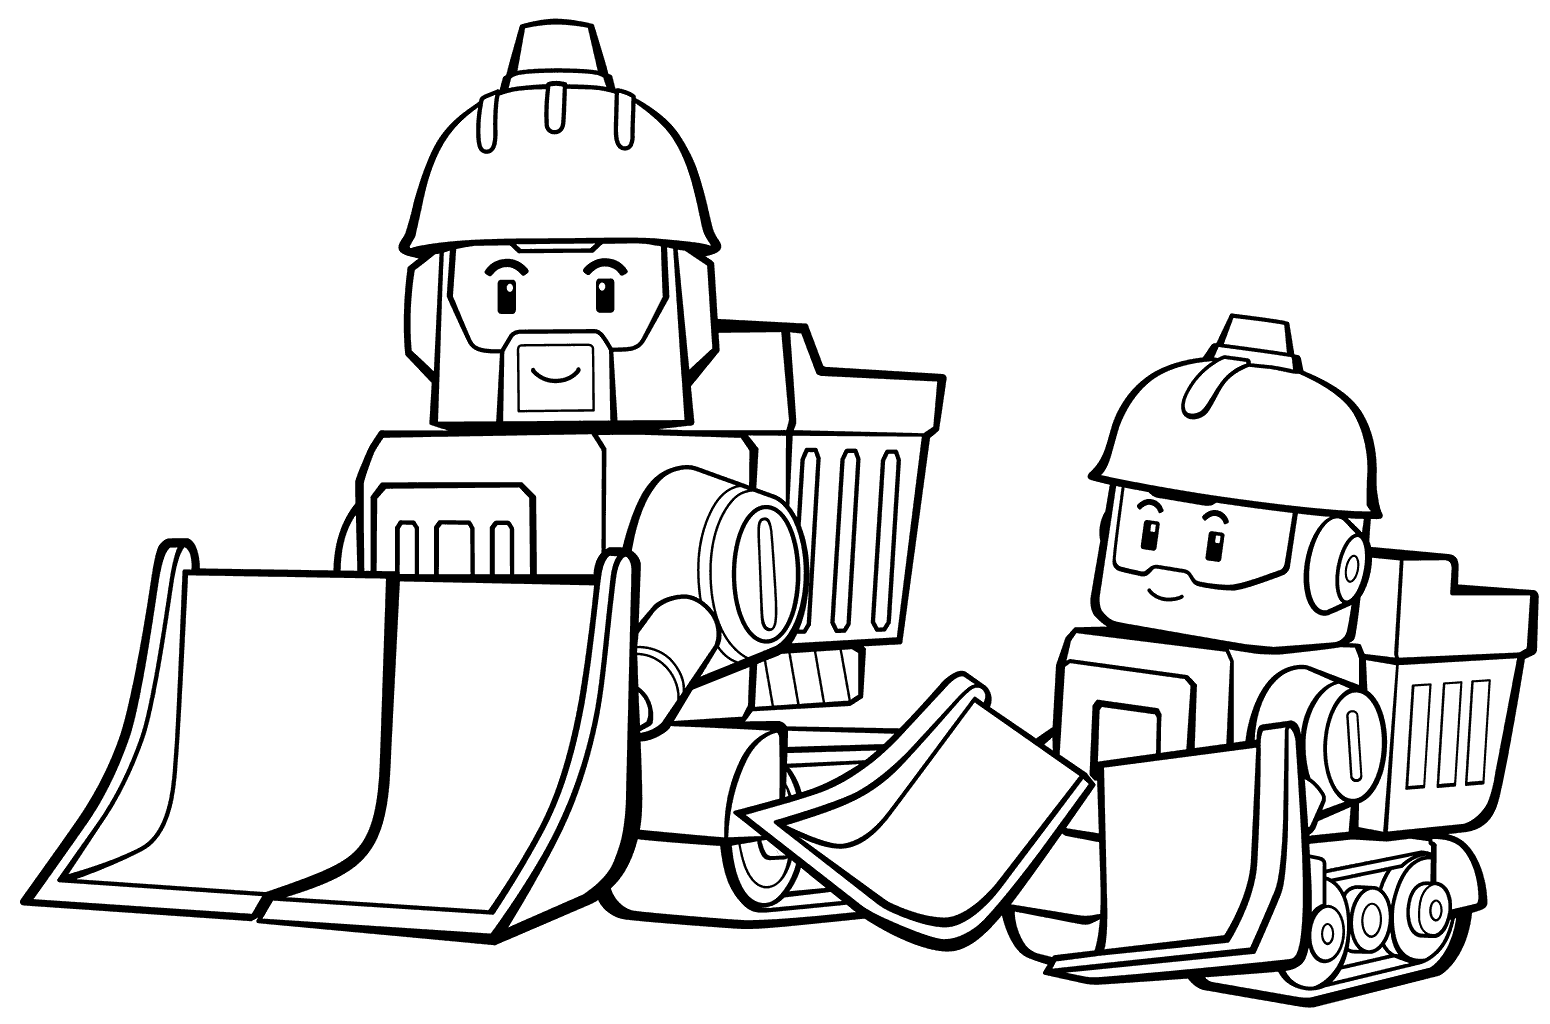 The Best Free Trace Coloring Page Images Download From 41